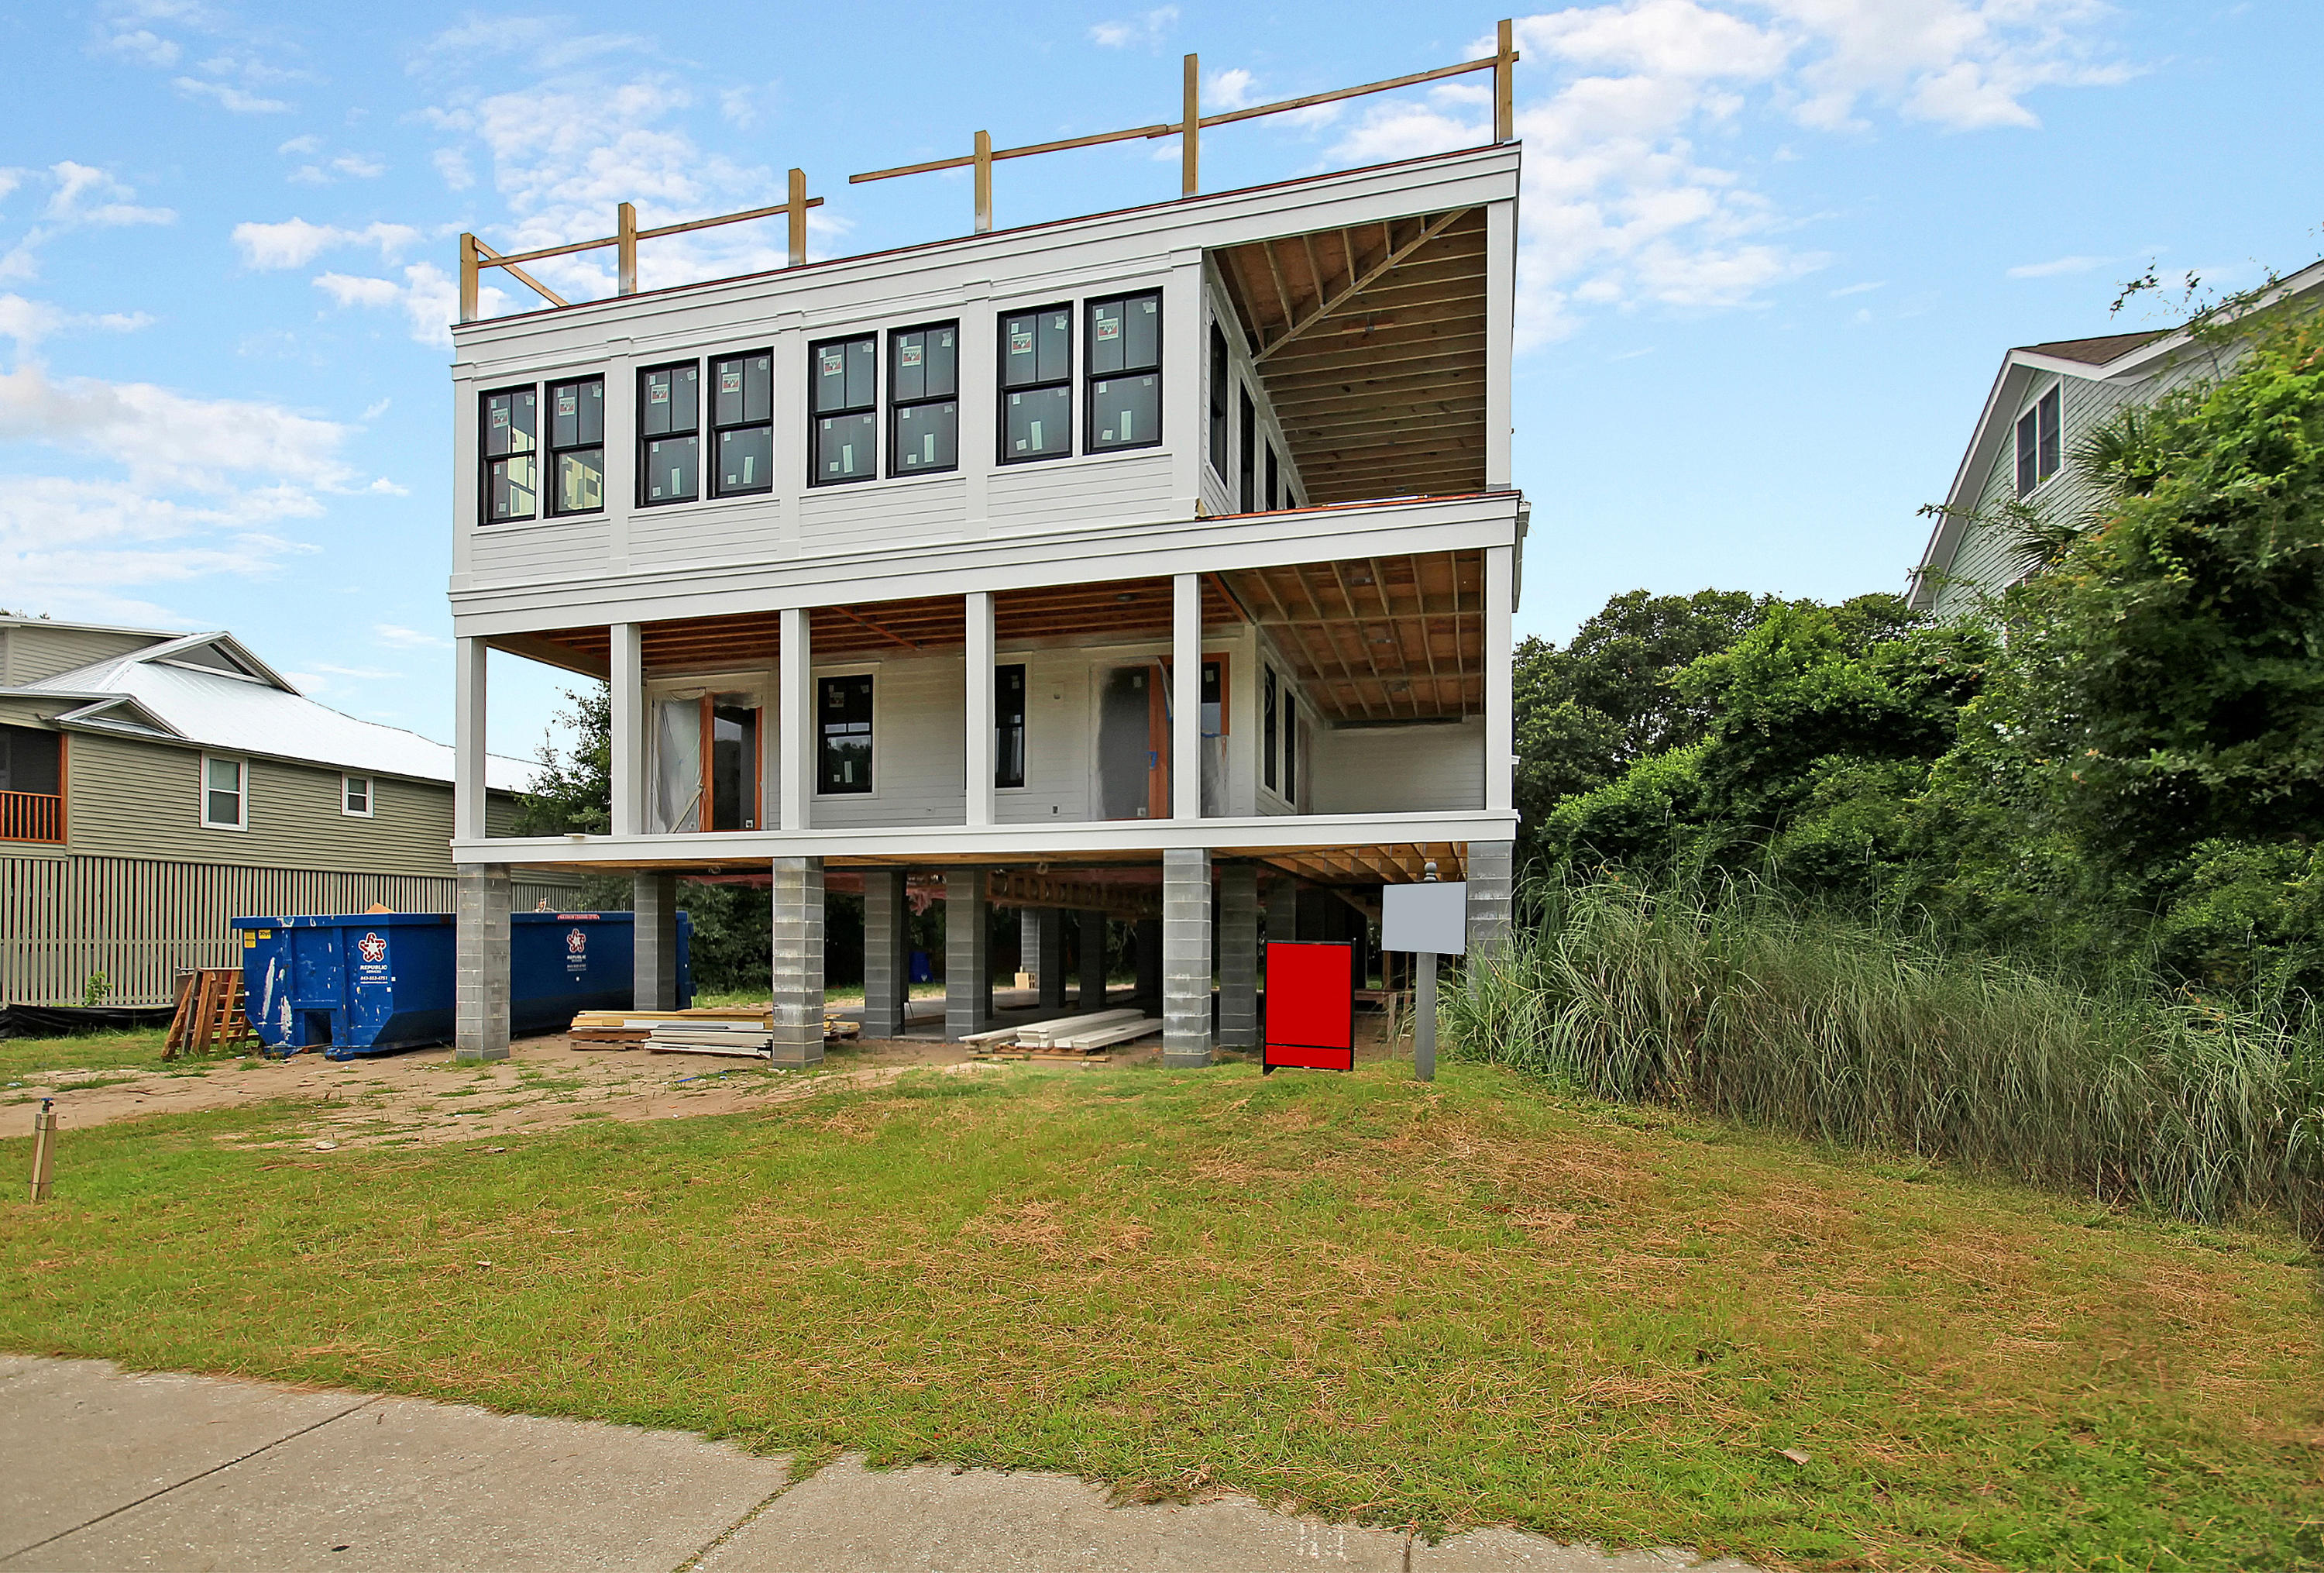 Isle of Palms Homes For Sale - 2305 Palm, Isle of Palms, SC - 8